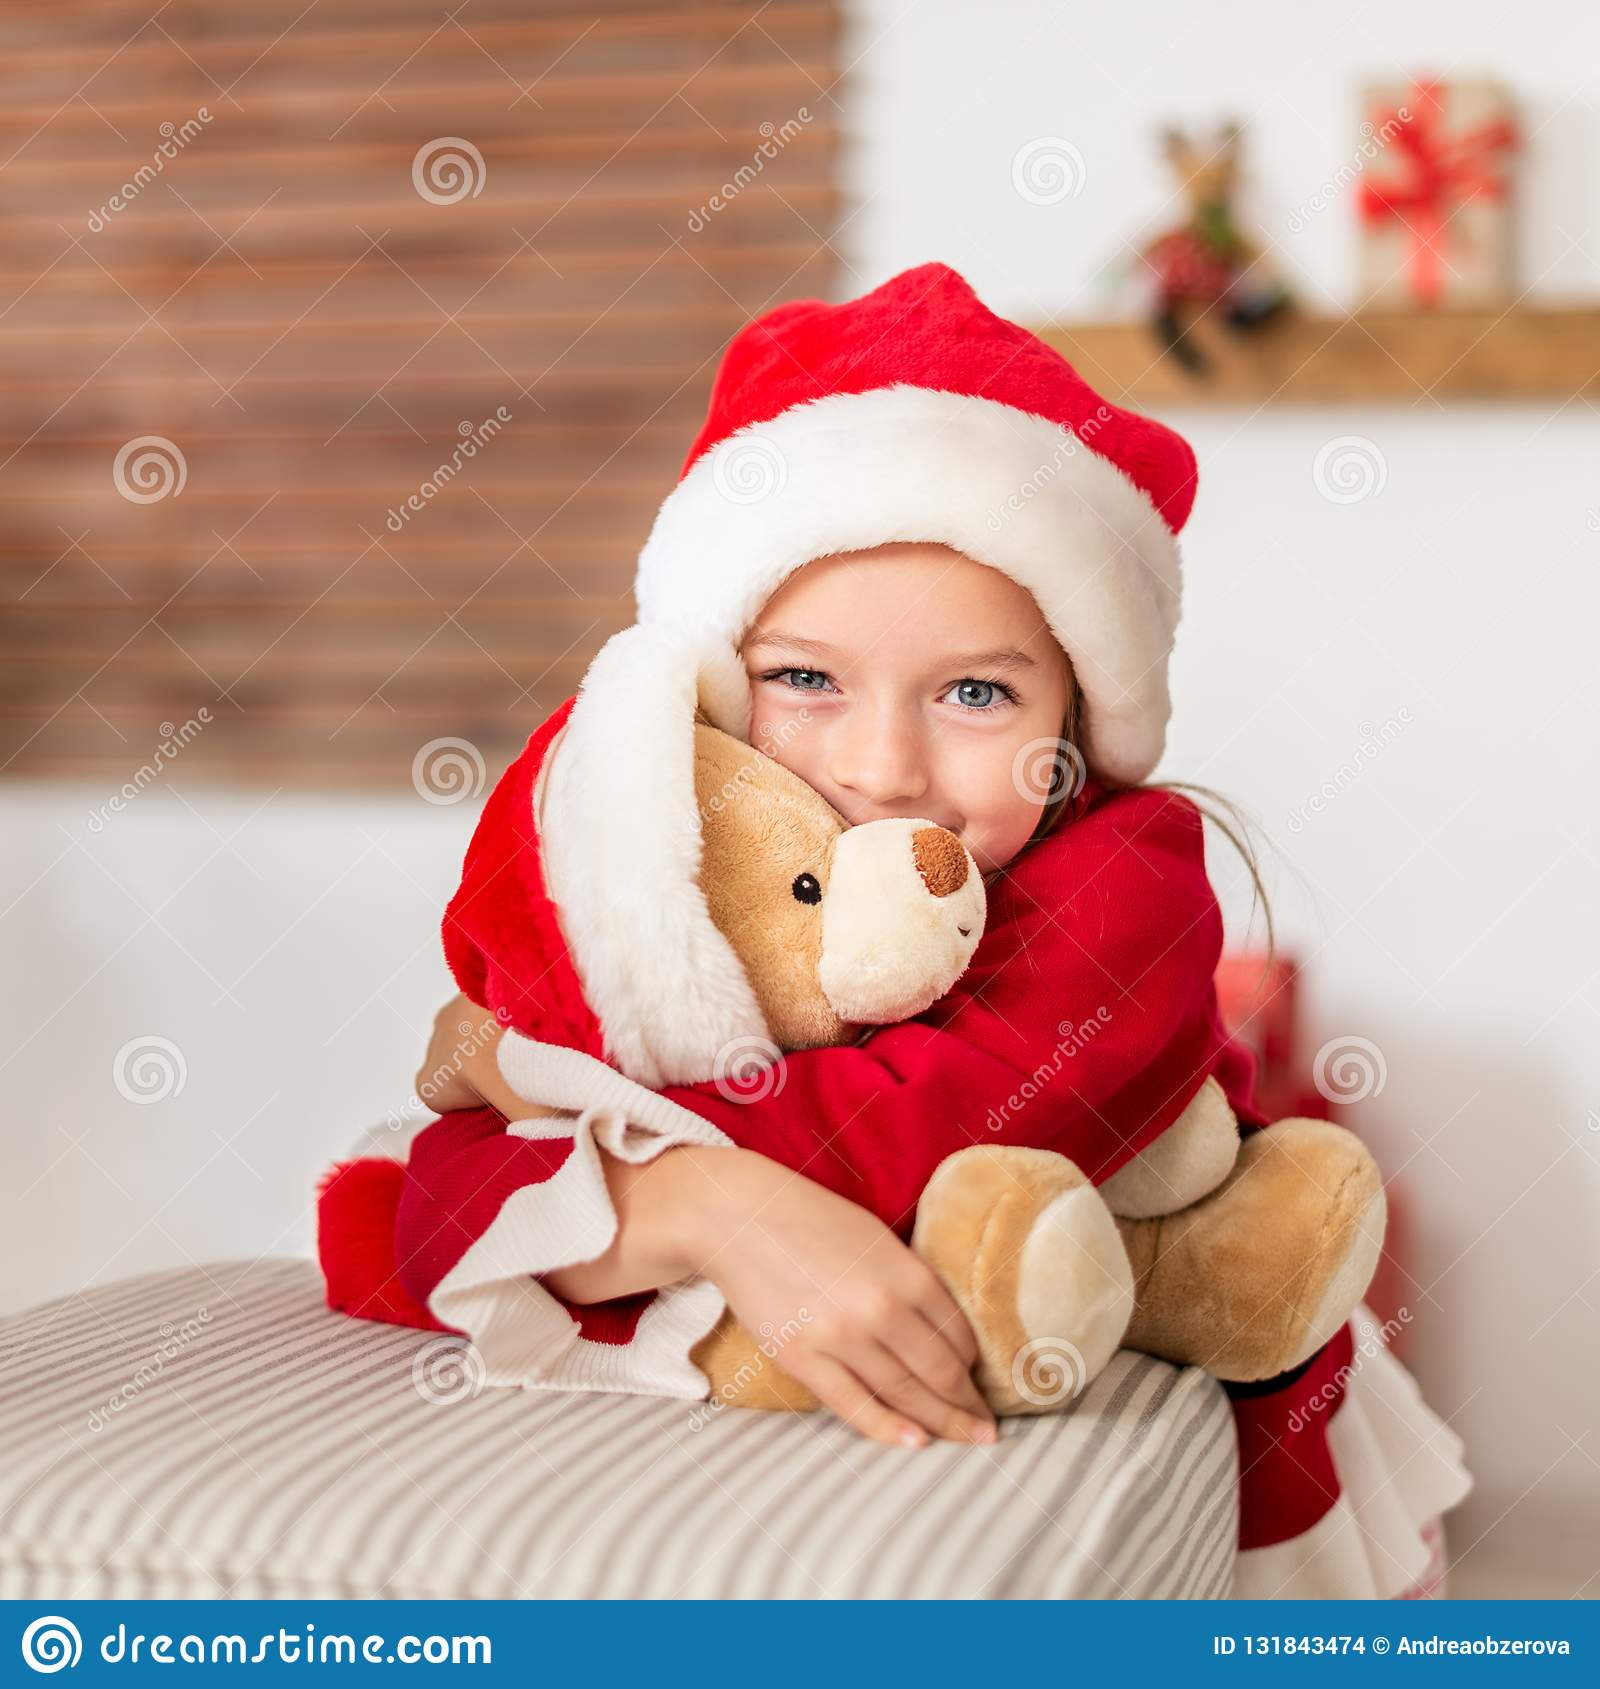 Cute young girl wearing santa hat hugging her christmas present, soft toy teddy bear. Happy kid with xmas present, smiling.